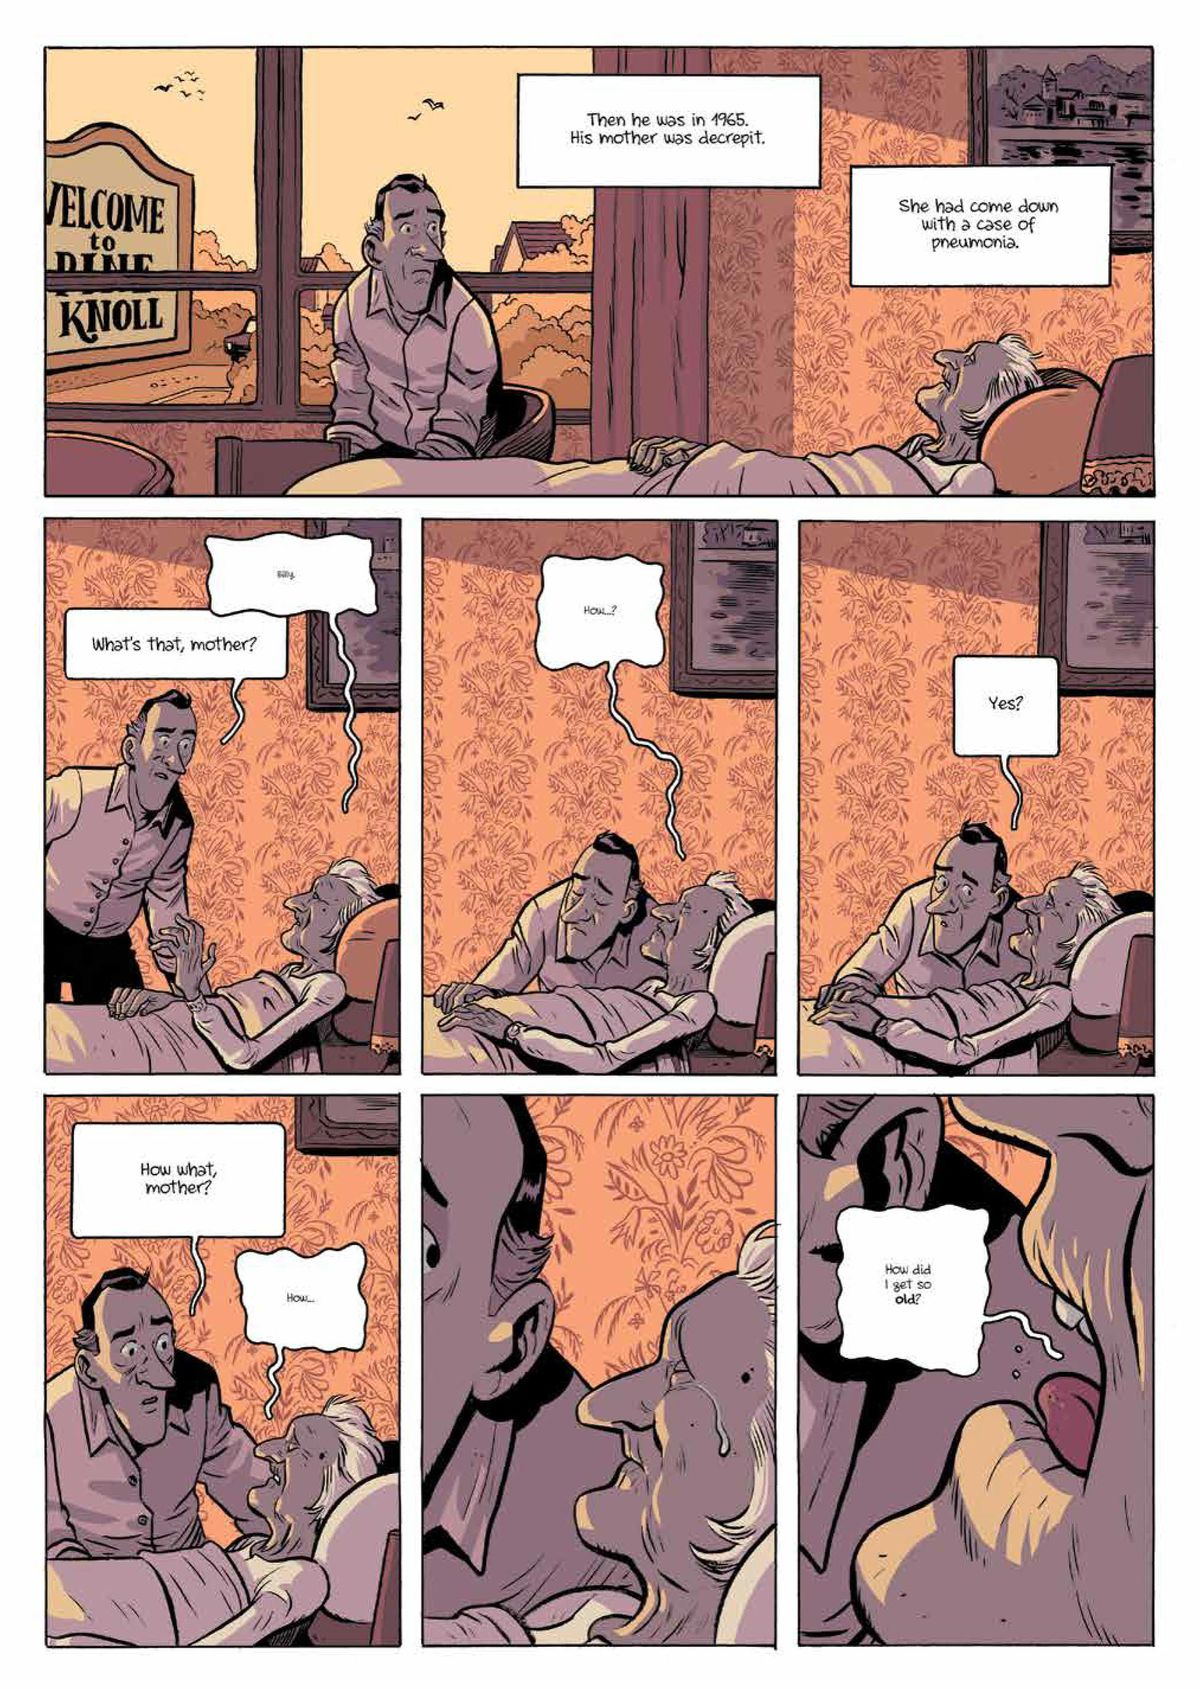 """Billy Pilgrim sits with his ailing mother as she asks him """"How did I get so old,"""" in Slaughterhouse-Five, Boom Studios (2020)."""